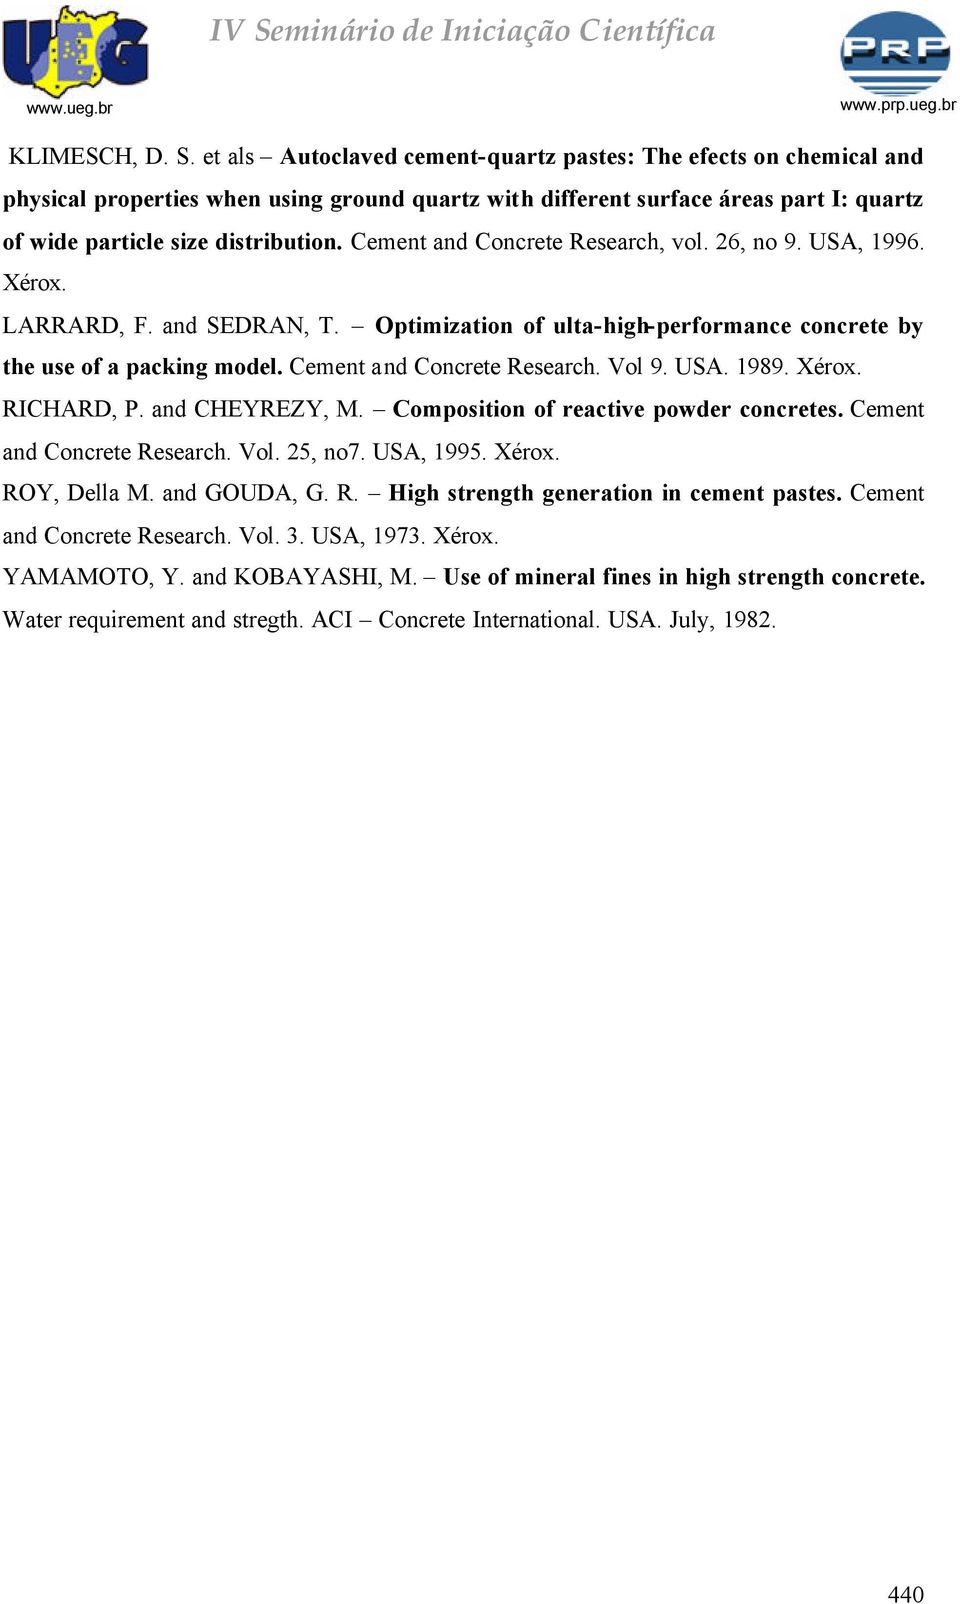 Cement and Concrete Research, vol. 26, no 9. USA, 1996. Xérox. LARRARD, F. and SEDRAN, T. Optimization of ulta-high-performance concrete by the use of a packing model. Cement and Concrete Research.